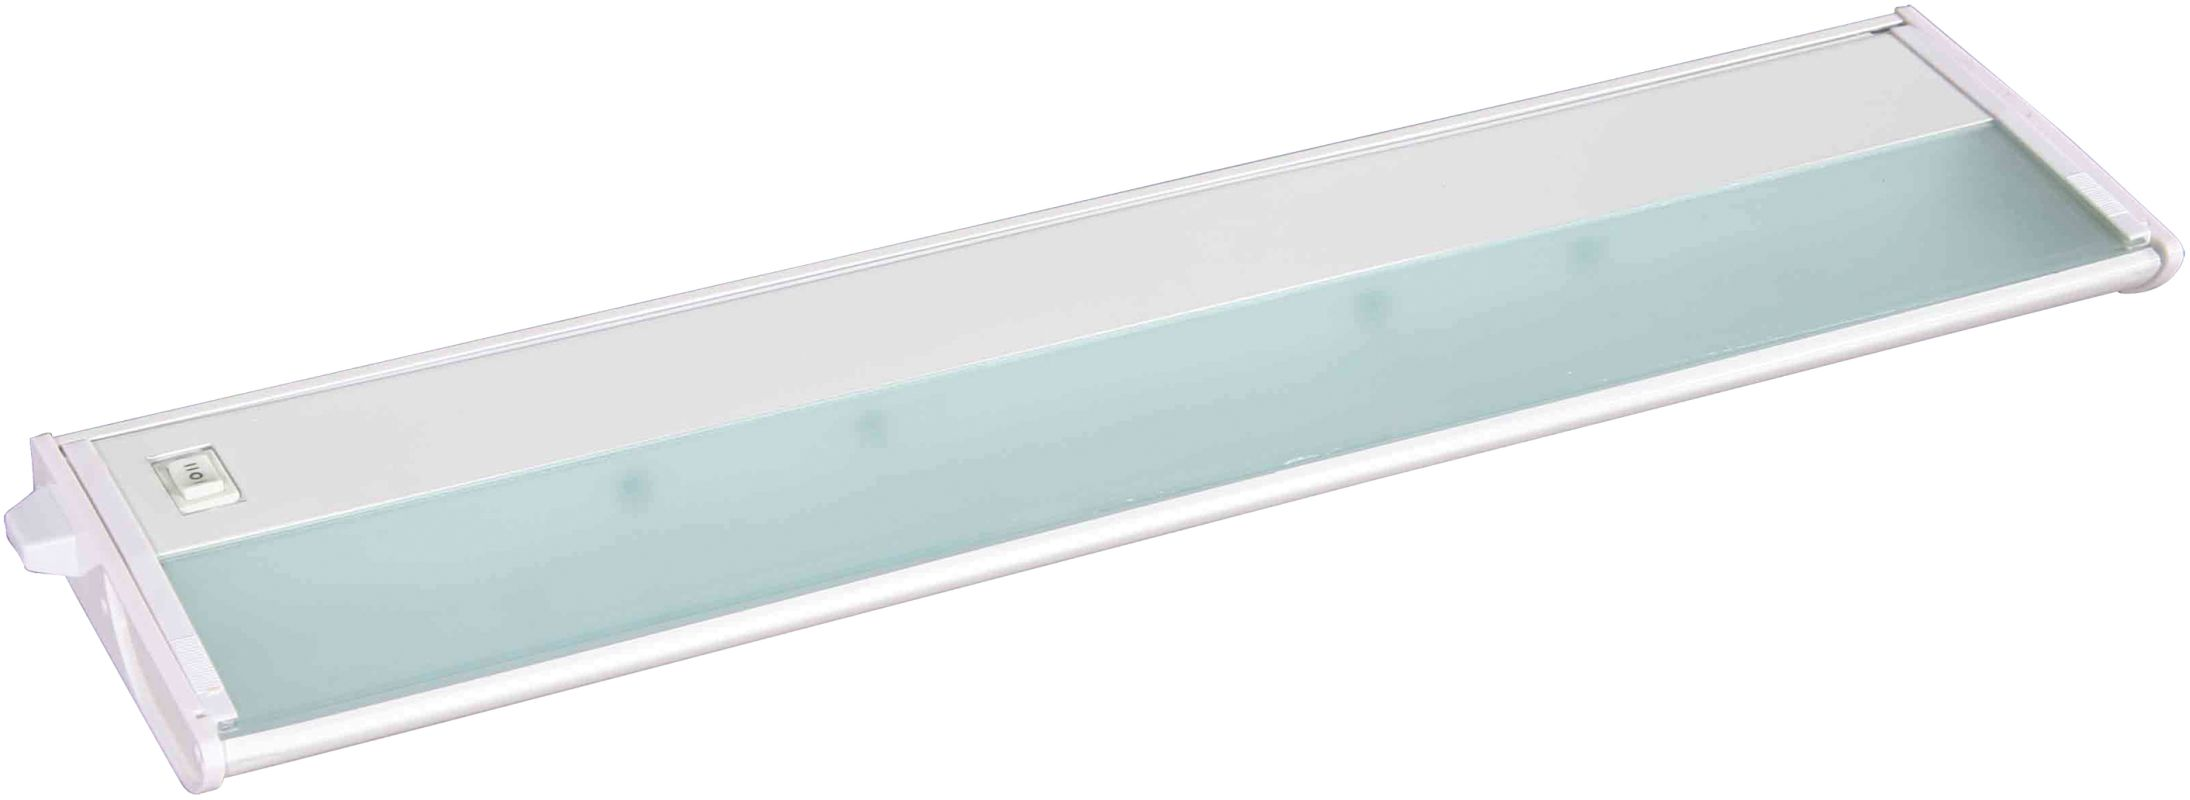 "Maxim 87842 21"" 3 Light Linkable Xenon Under Cabinet Light from the"